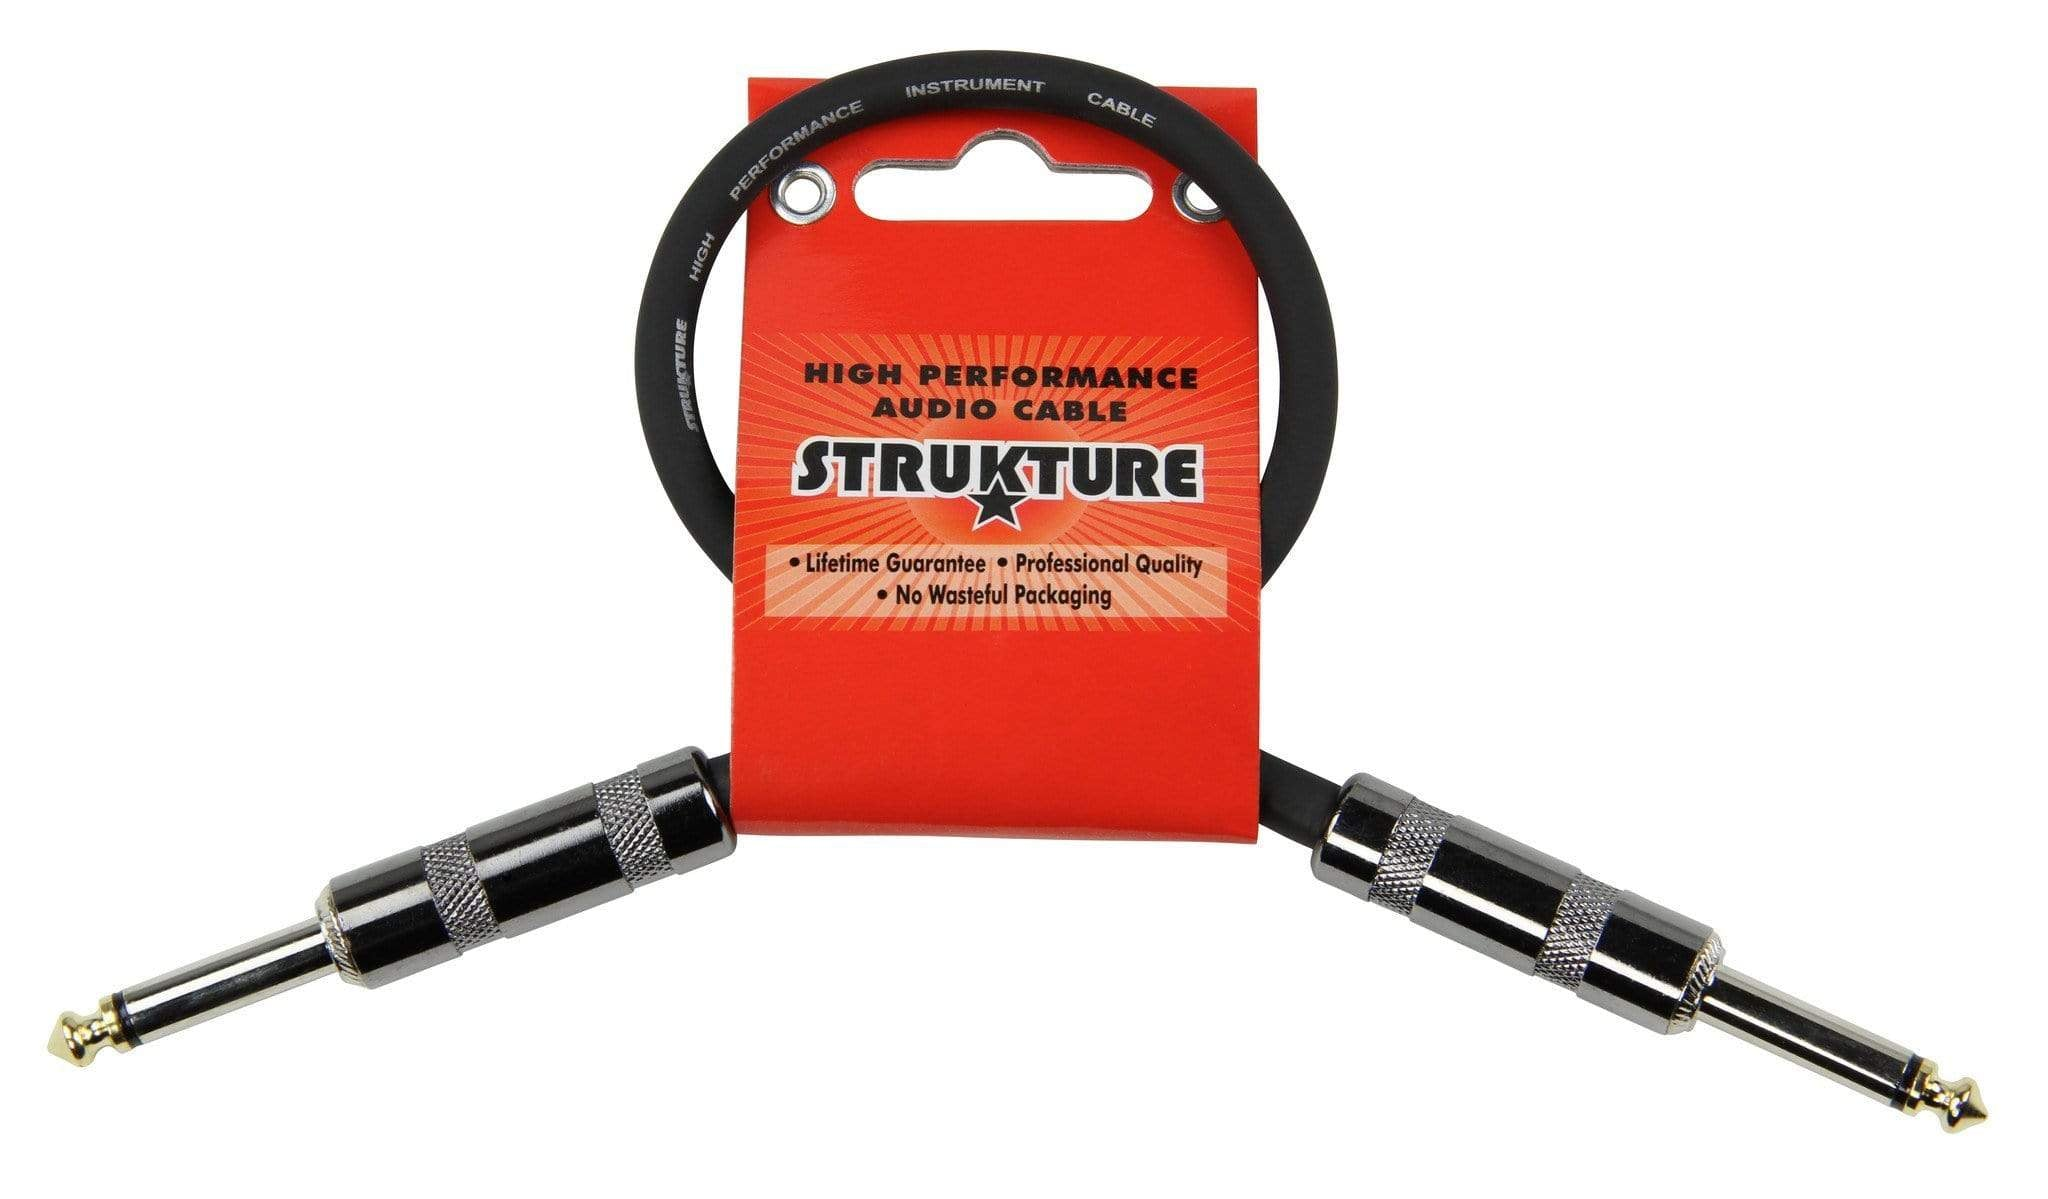 "STRUKTURE PATCH CABLES 12"" Straight Patch Cord 1/4 Guitar Effect Pedalboard Cable 1 ft Gold-Tip NEW"